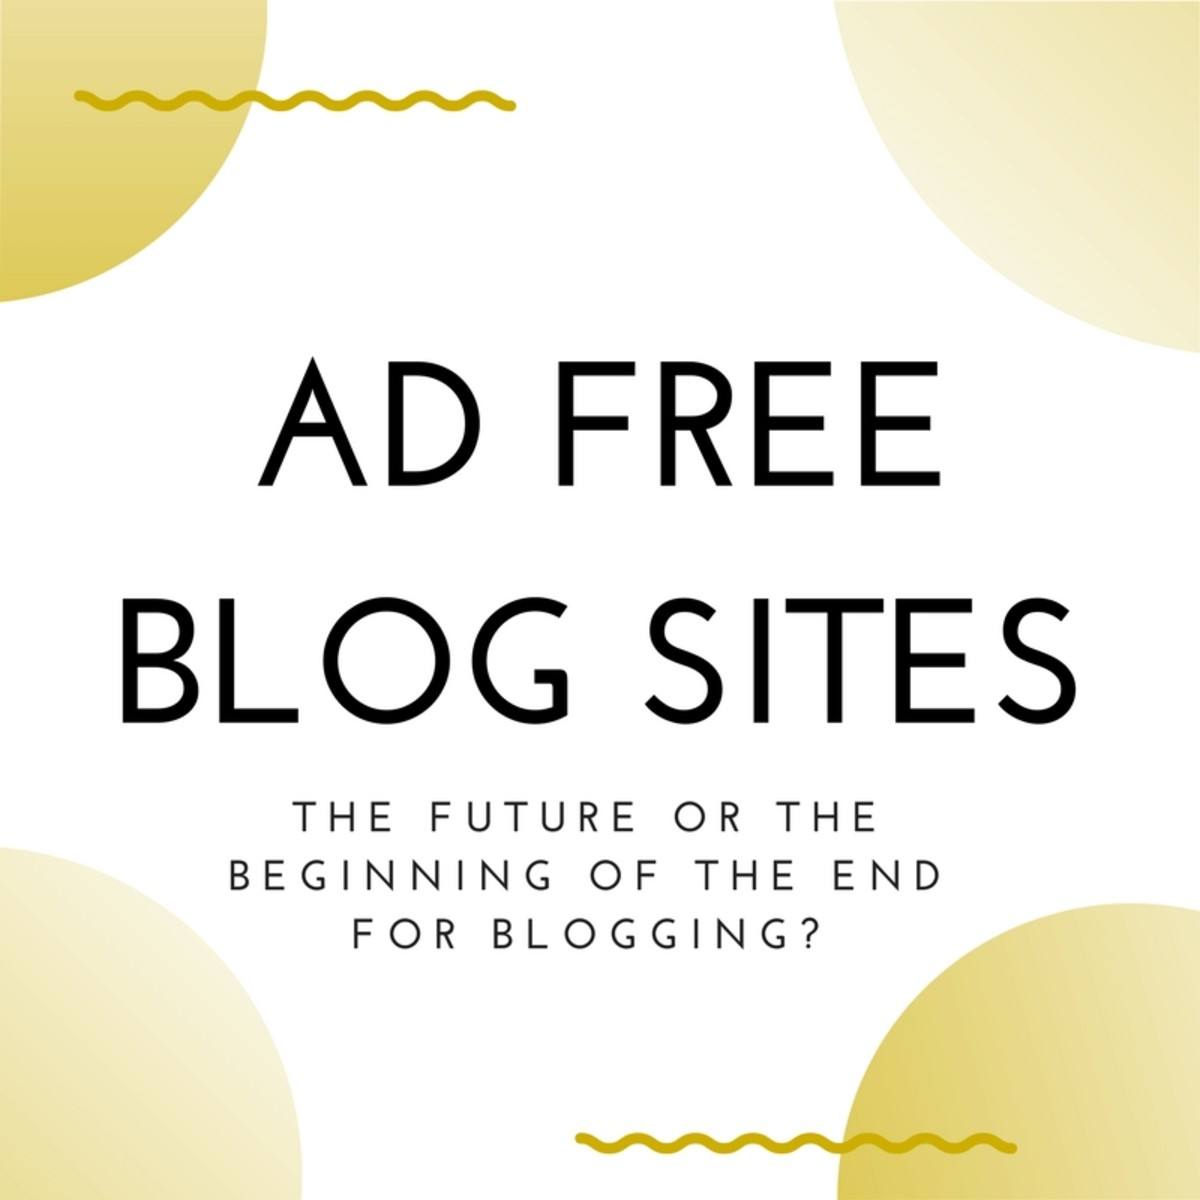 Ad-Free Blog Sites: The Future or the Beginning of the End for Blogging?